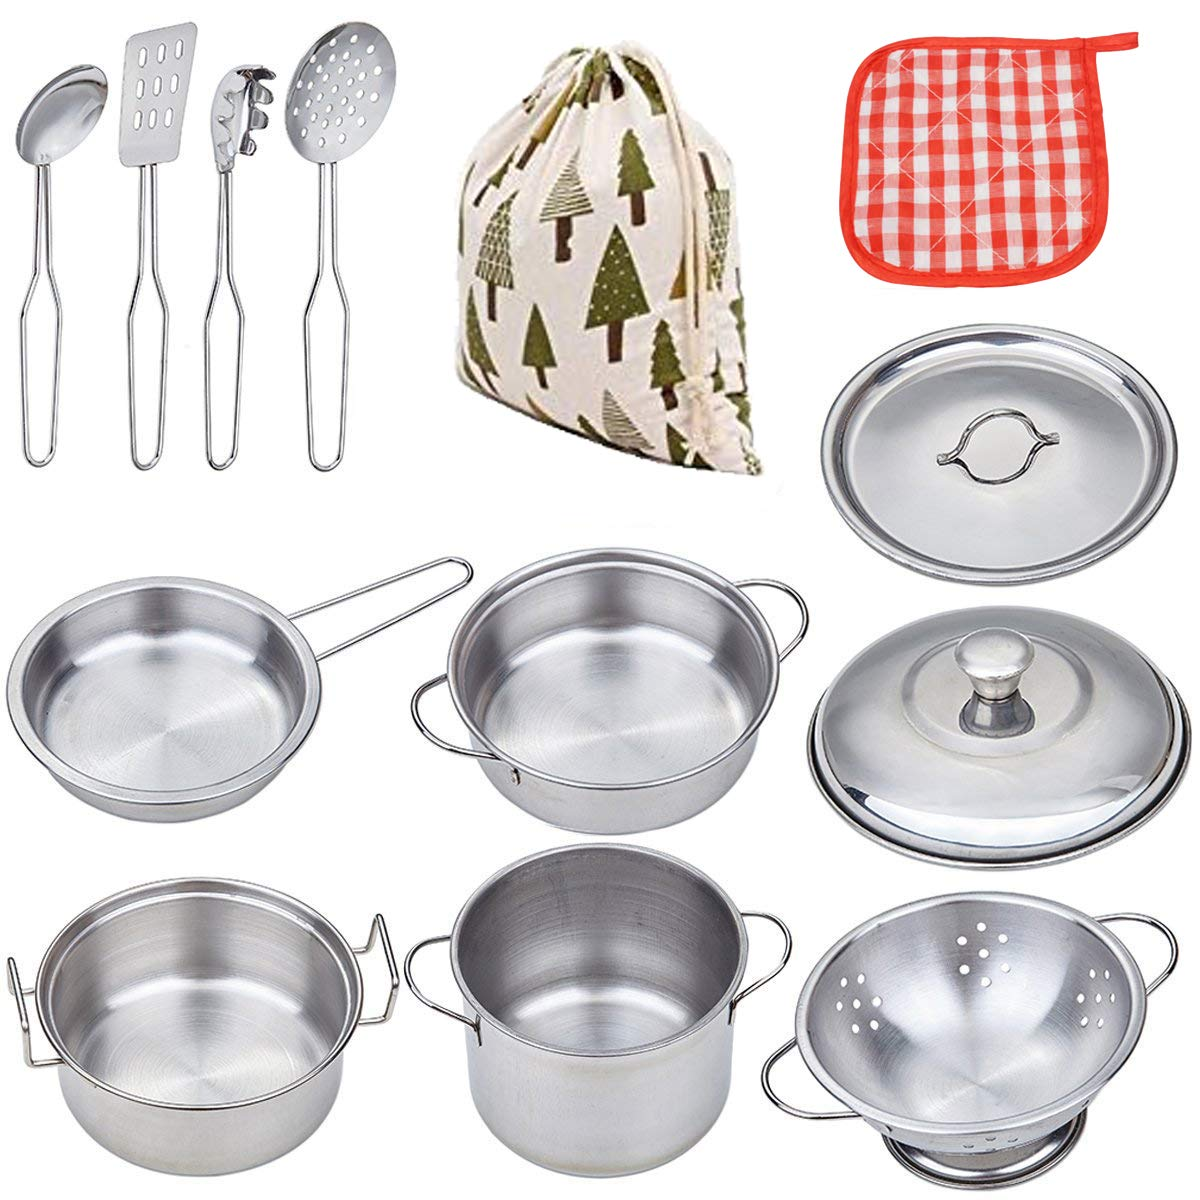 VIPAMZ My First Play Kitchen Pretend Cooking Toy Cookware Playset for Kids Steel